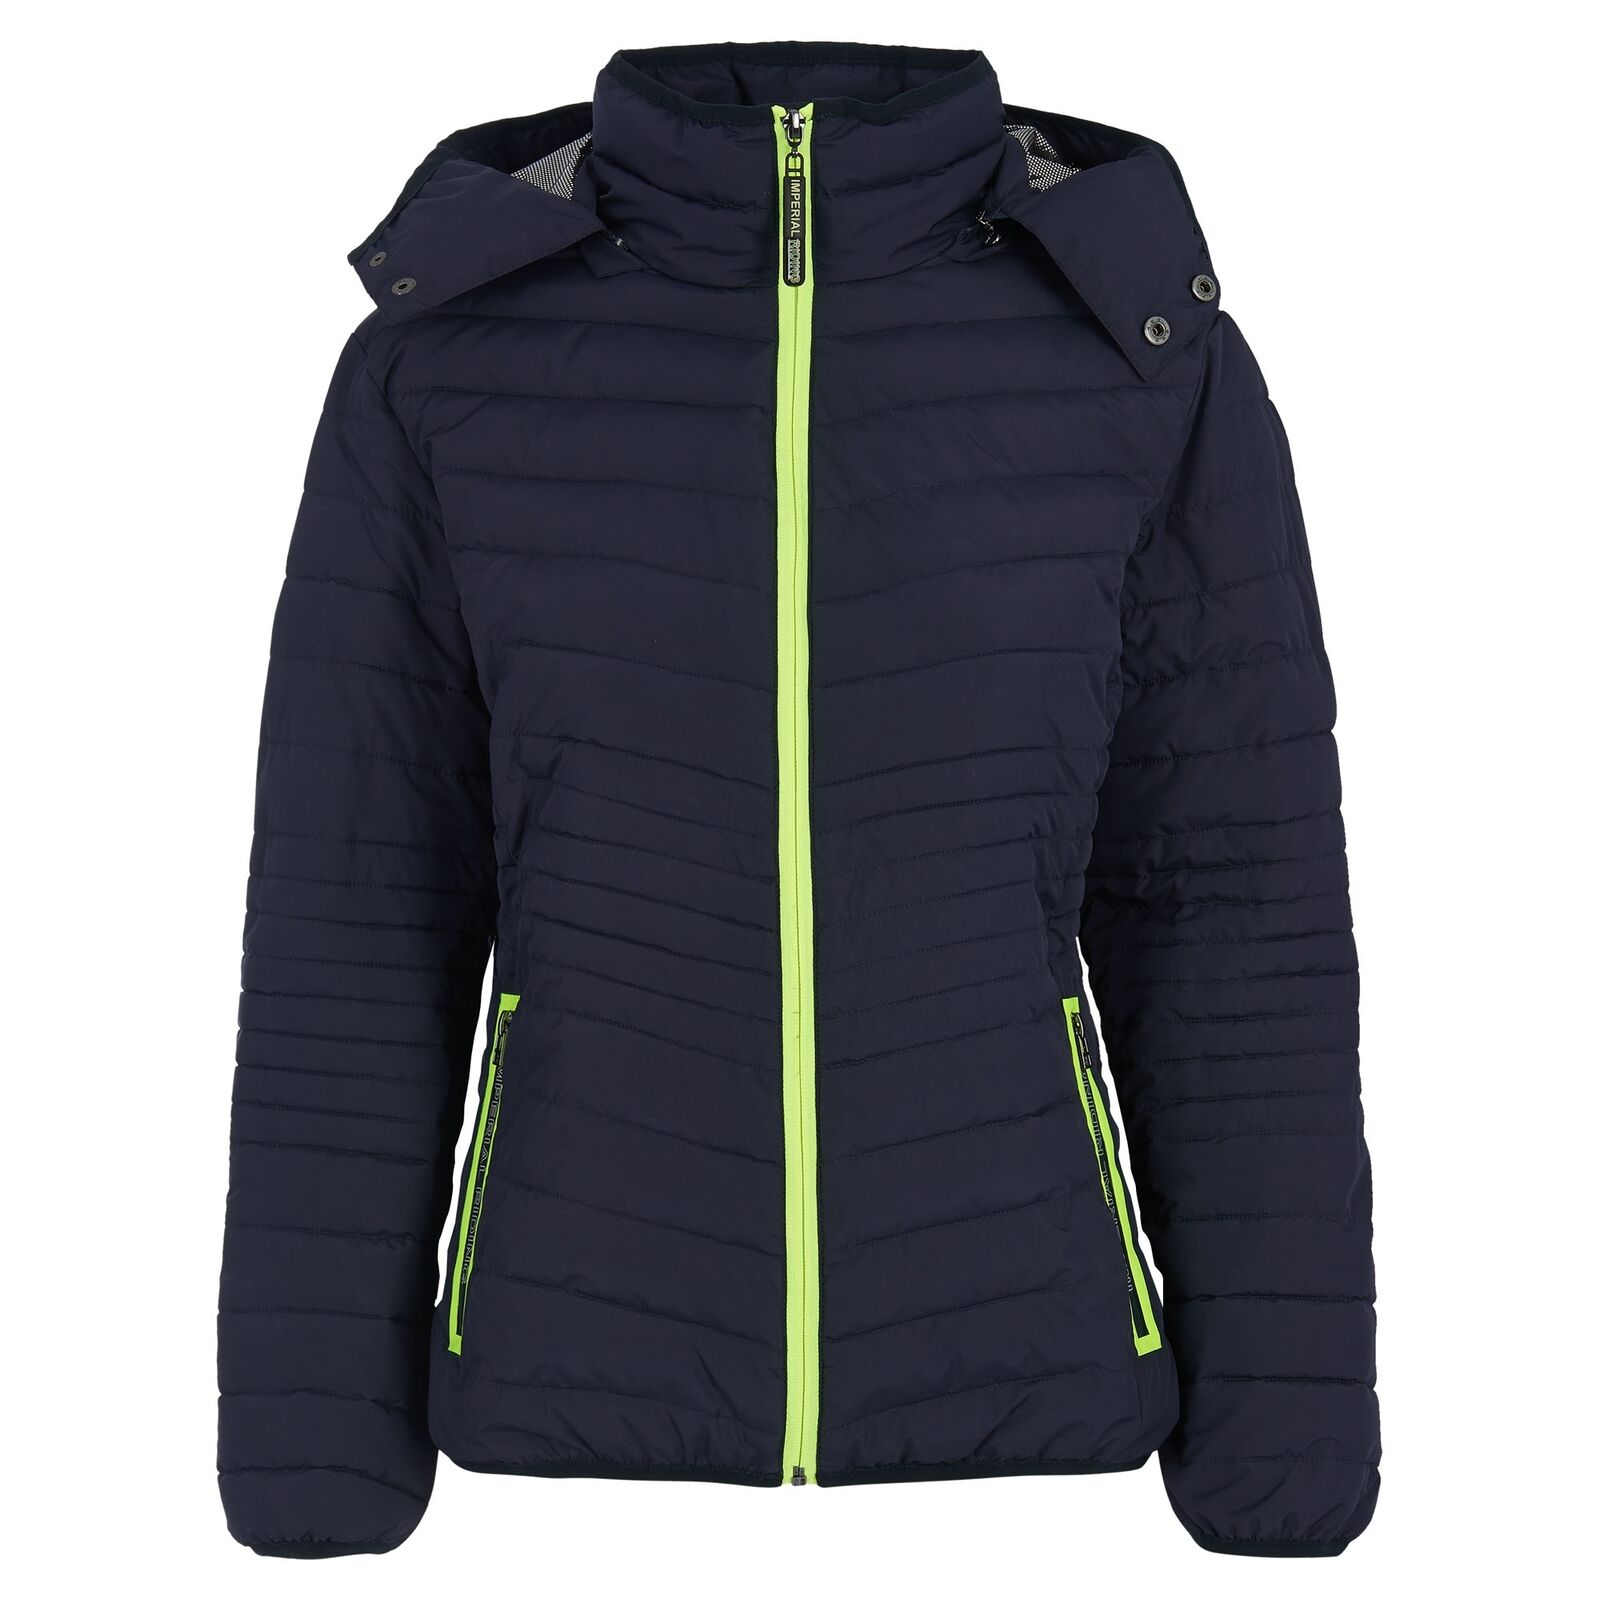 Imperial equitazione Hip JACKET out of the scatola Donna Invernale Giacca